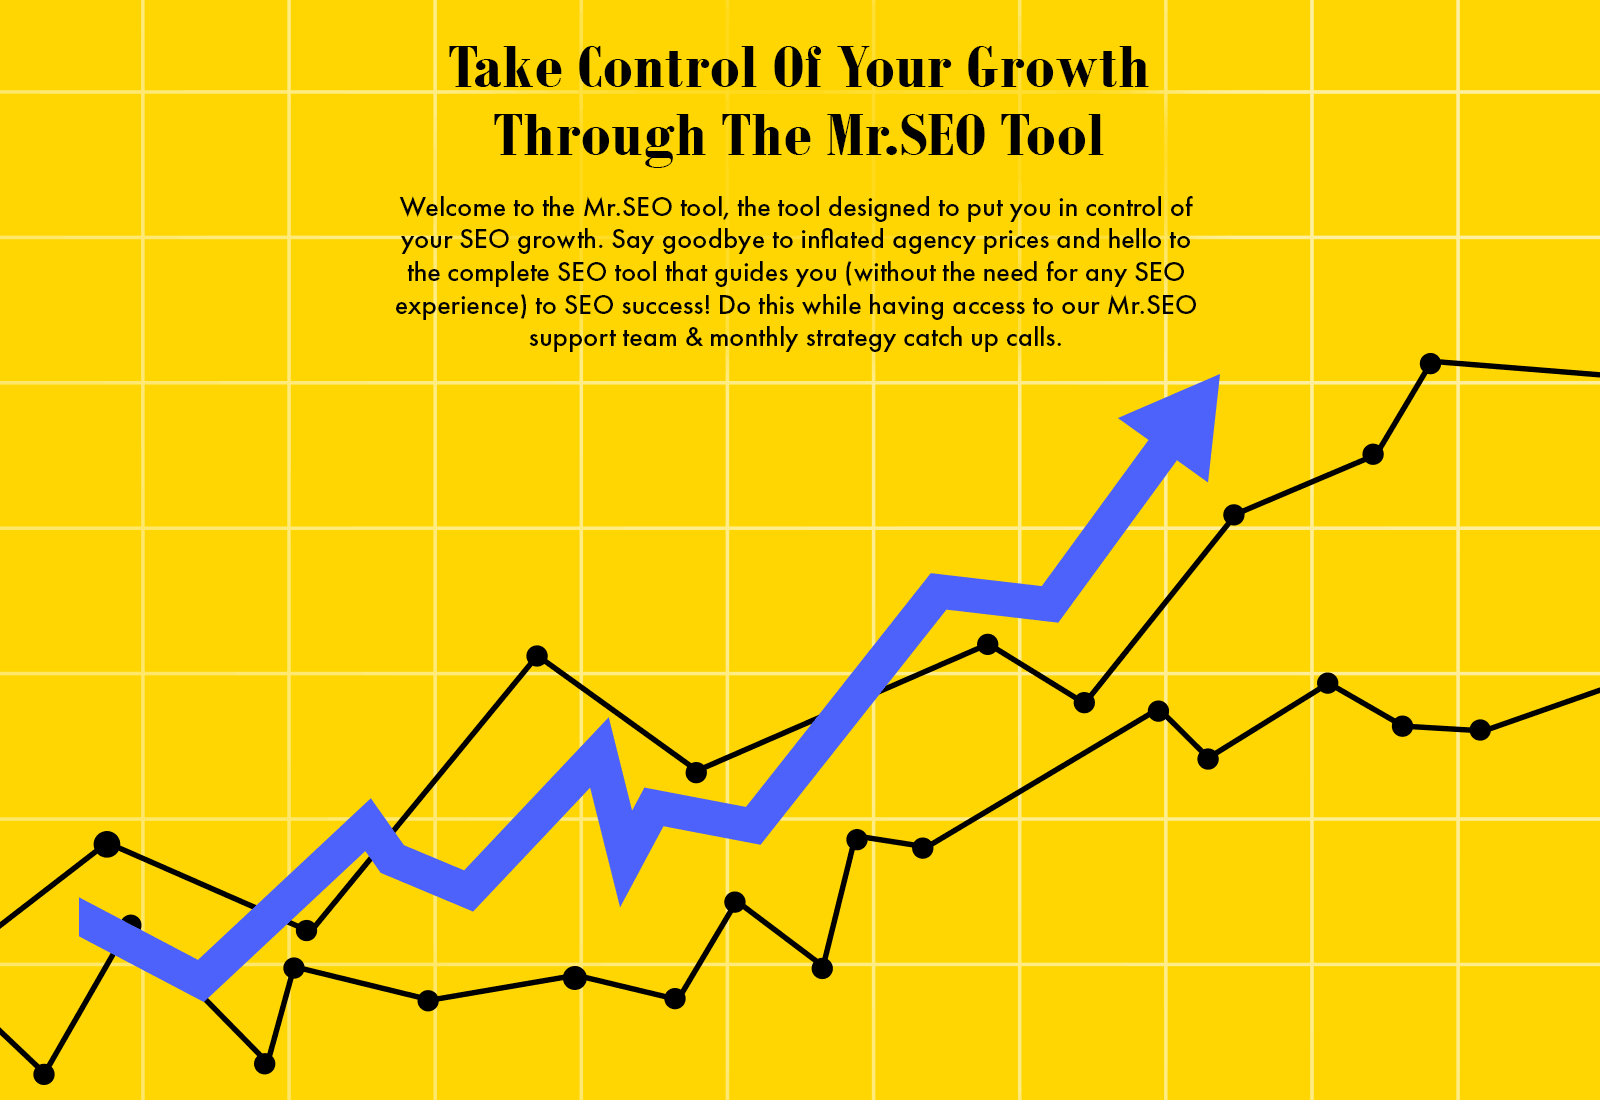 Take control of your SEO growth